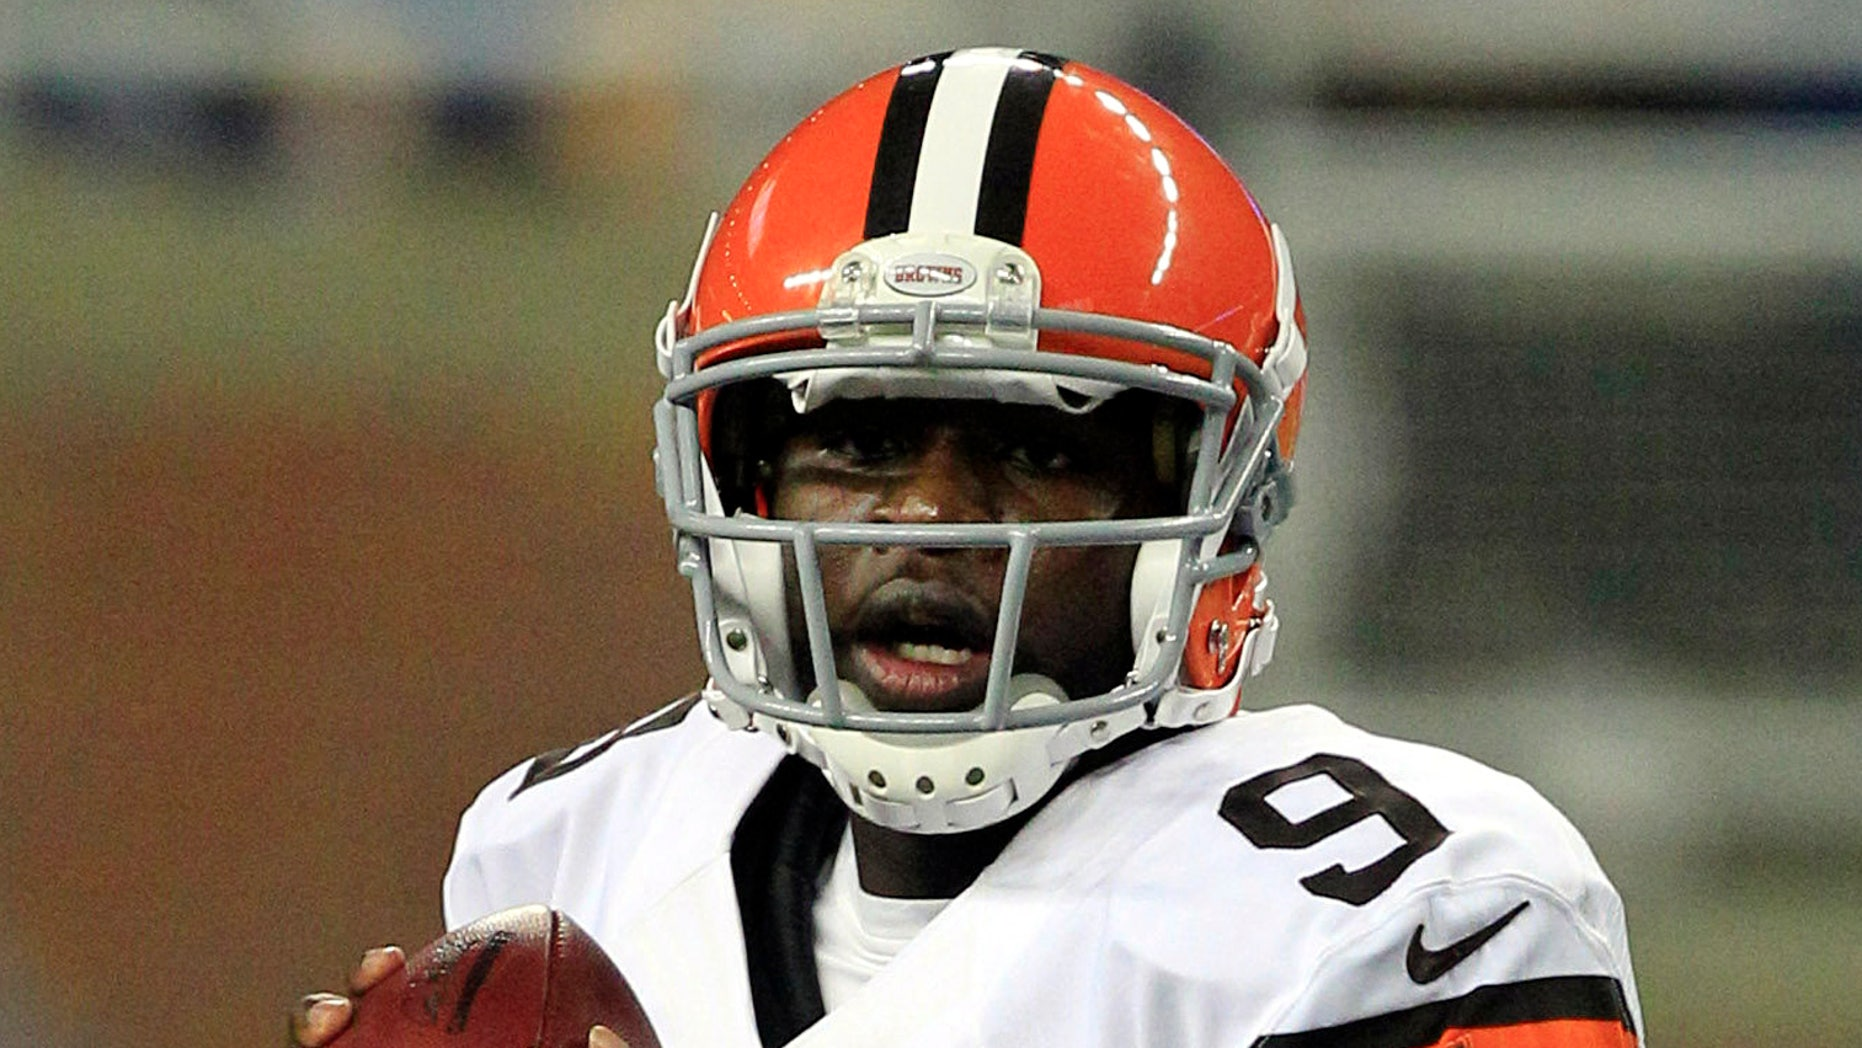 FILE - In this Aug. 10, 2012, file photo, Cleveland Browns quarterback Thaddeus Lewis looks down field during the second half of an NFL preseason football game against the Detroit Lions in Detroit. Elevated from the practice squad on Monday, Lewis could make his NFL debut in Pittsburgh on Sunday. (AP Photo/Carlos Osorio, File)